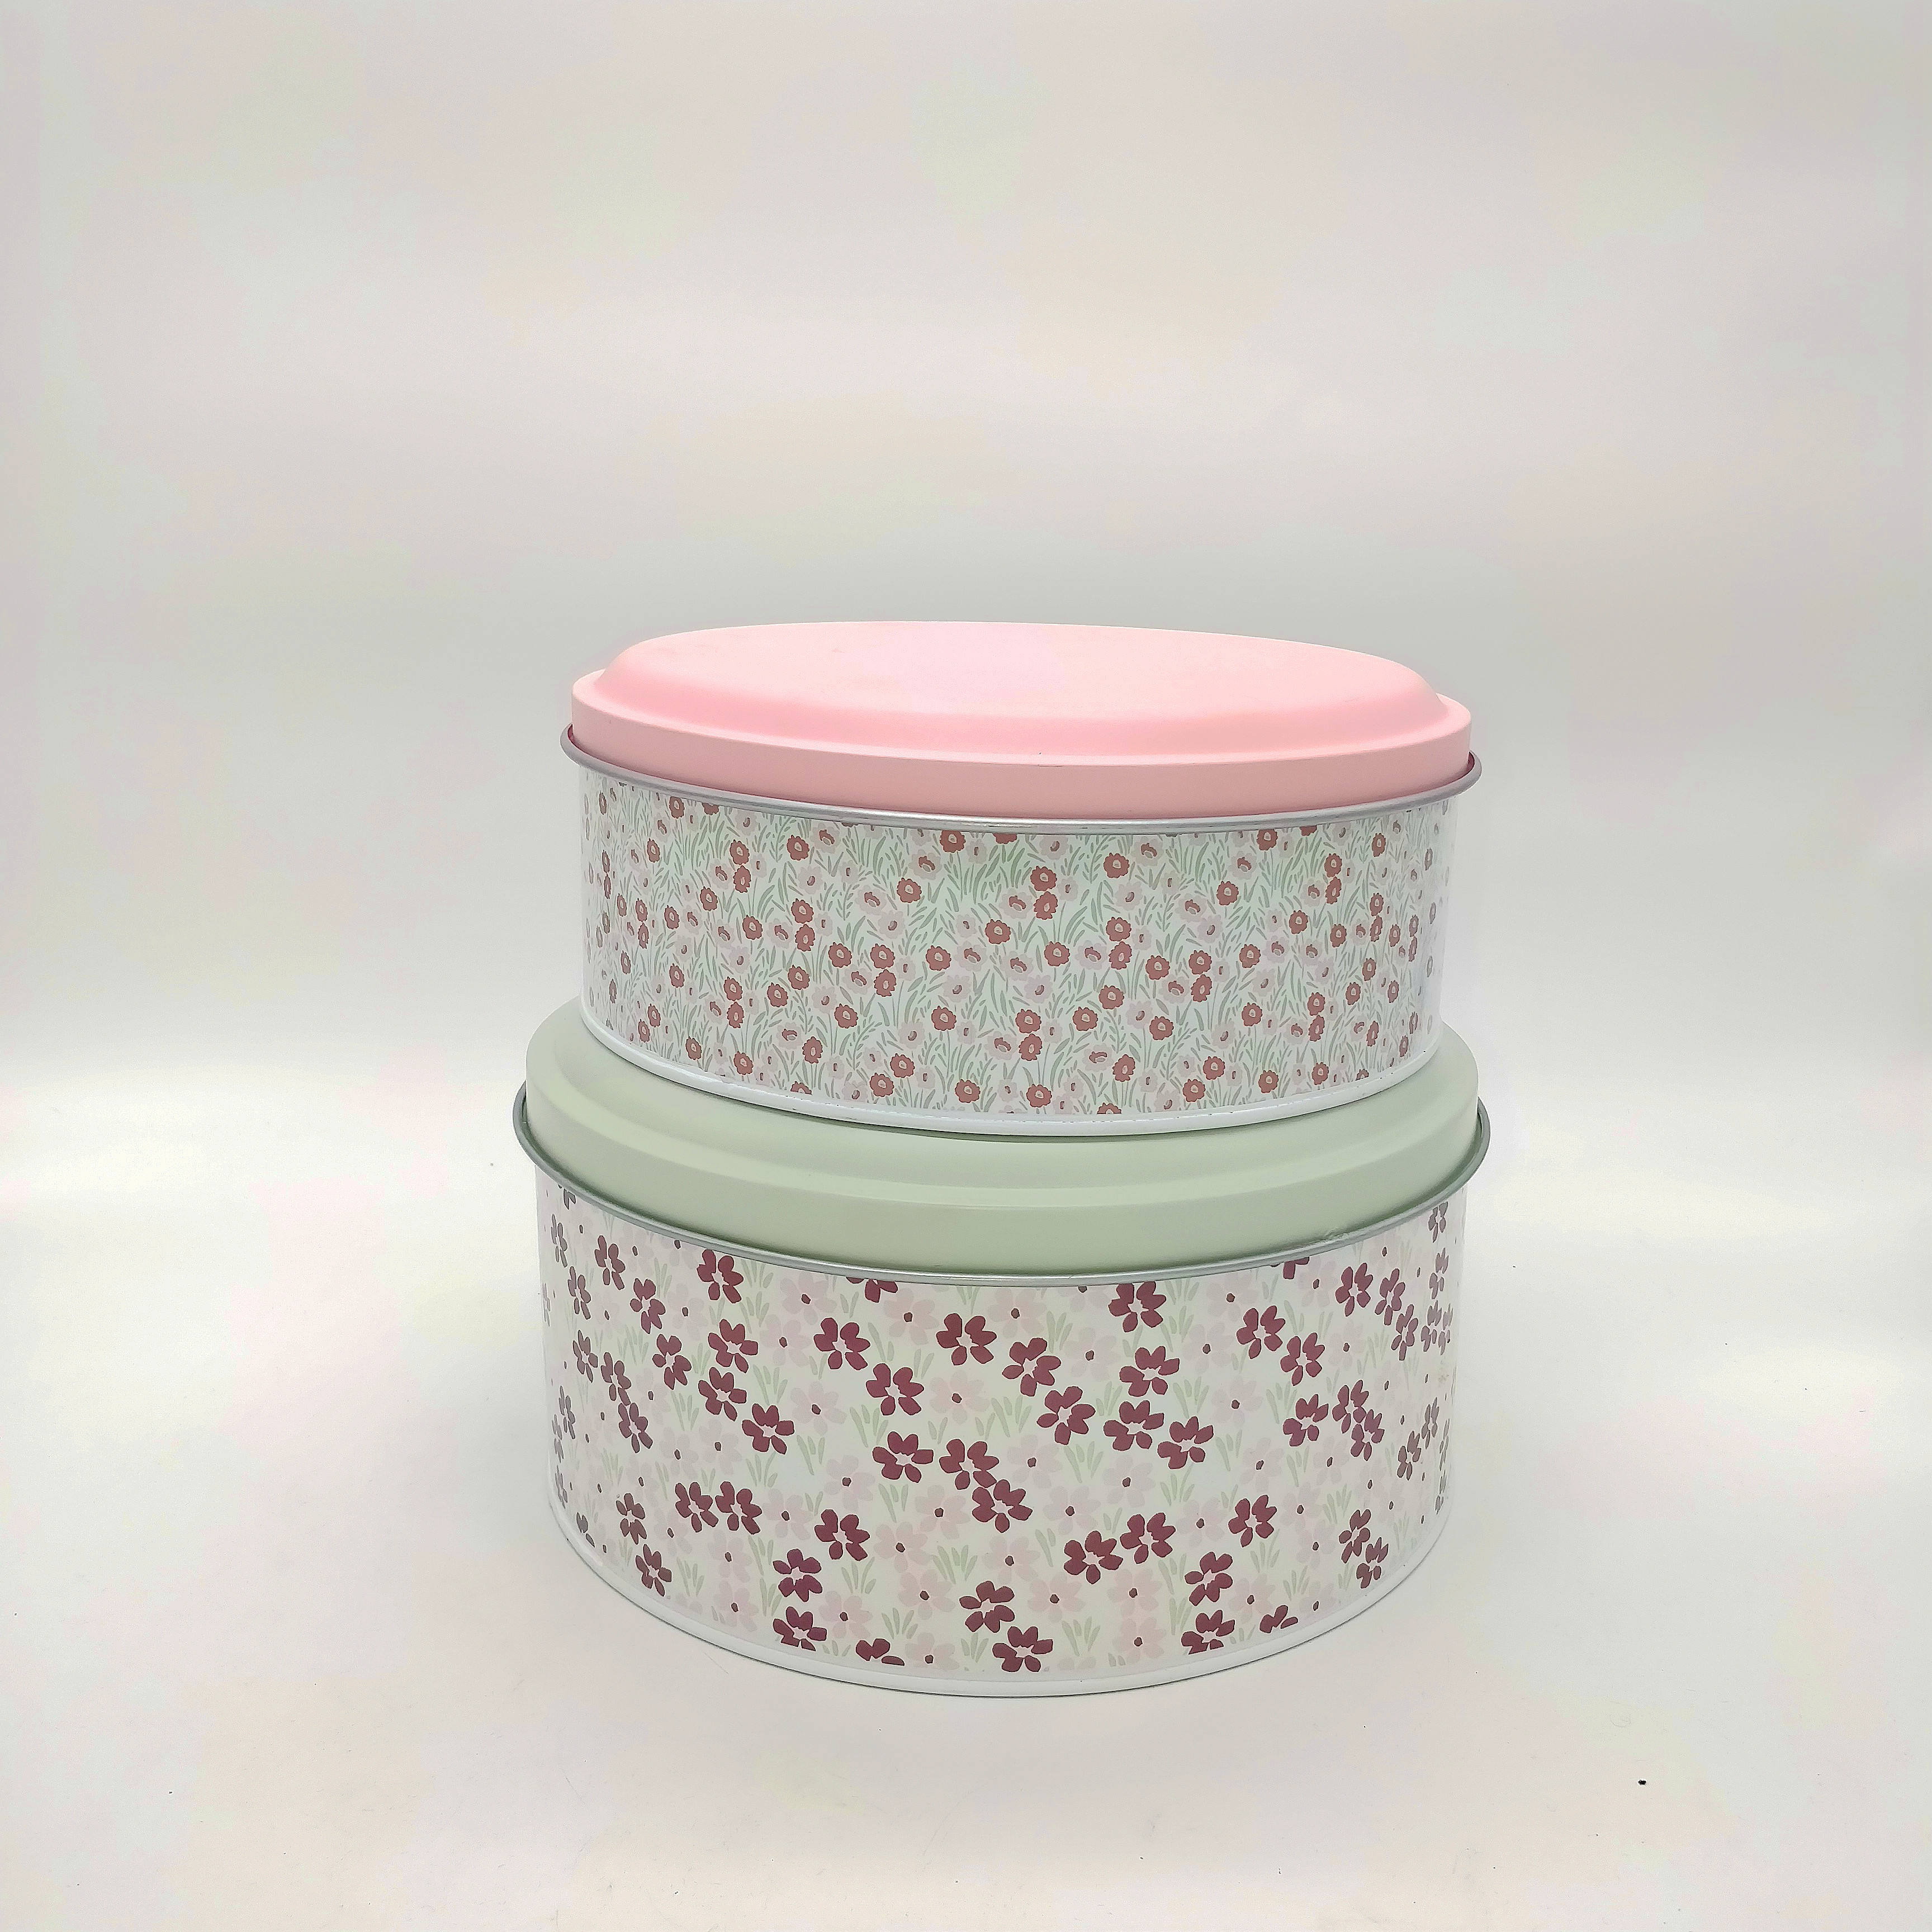 Kitchen Storage Biscuit Canister Cake Canister for Biscuit Sugar Coffee Tea Canister Jar